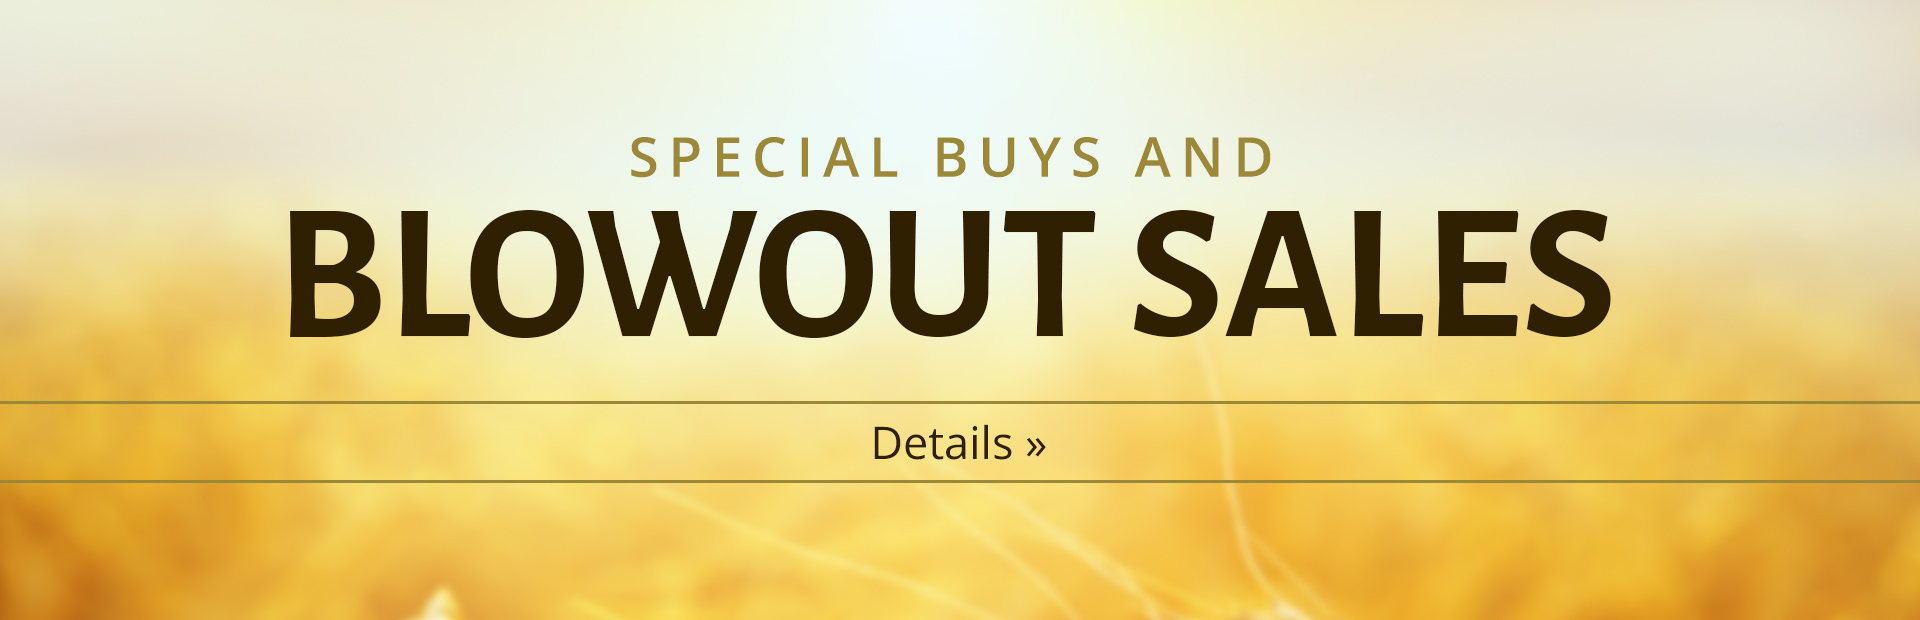 Special buys and blowout sales: Click here to browse our wares!